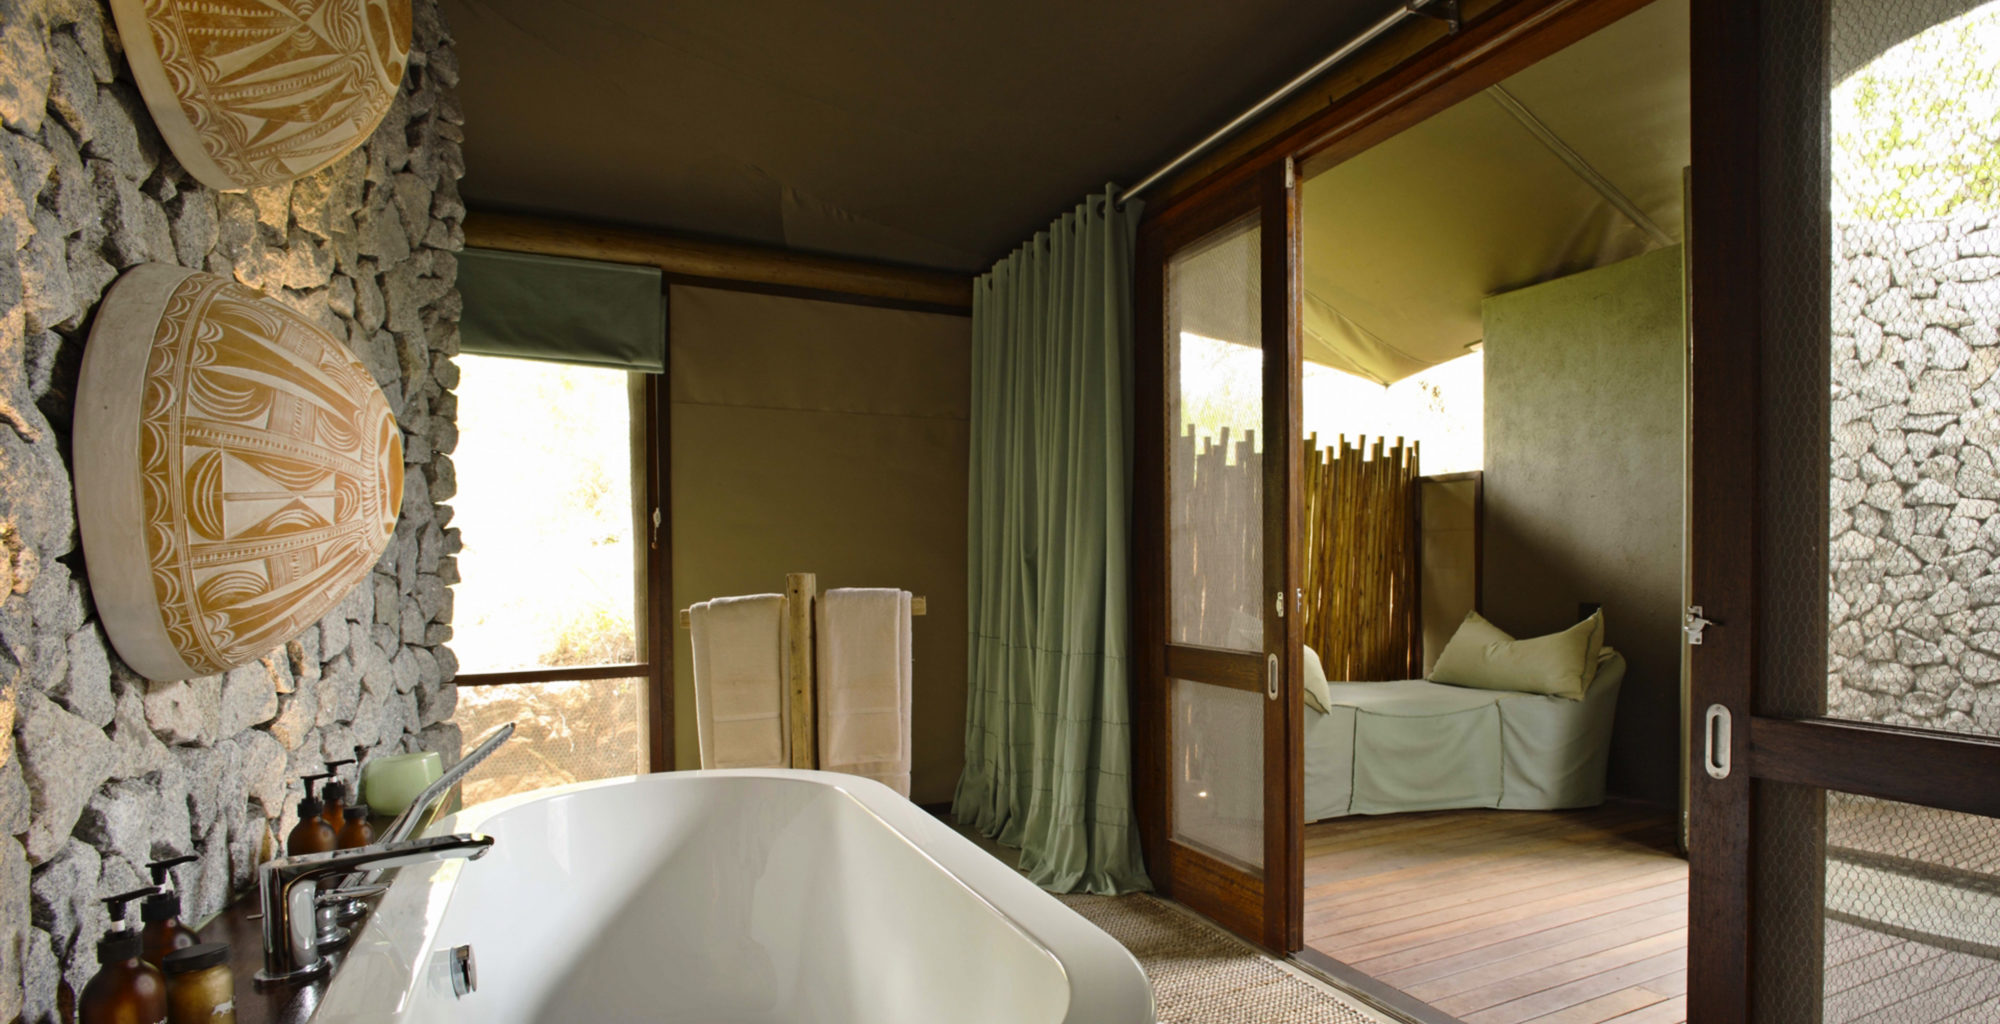 South-Africa-Ngala-Tented-Camp-Bathroom